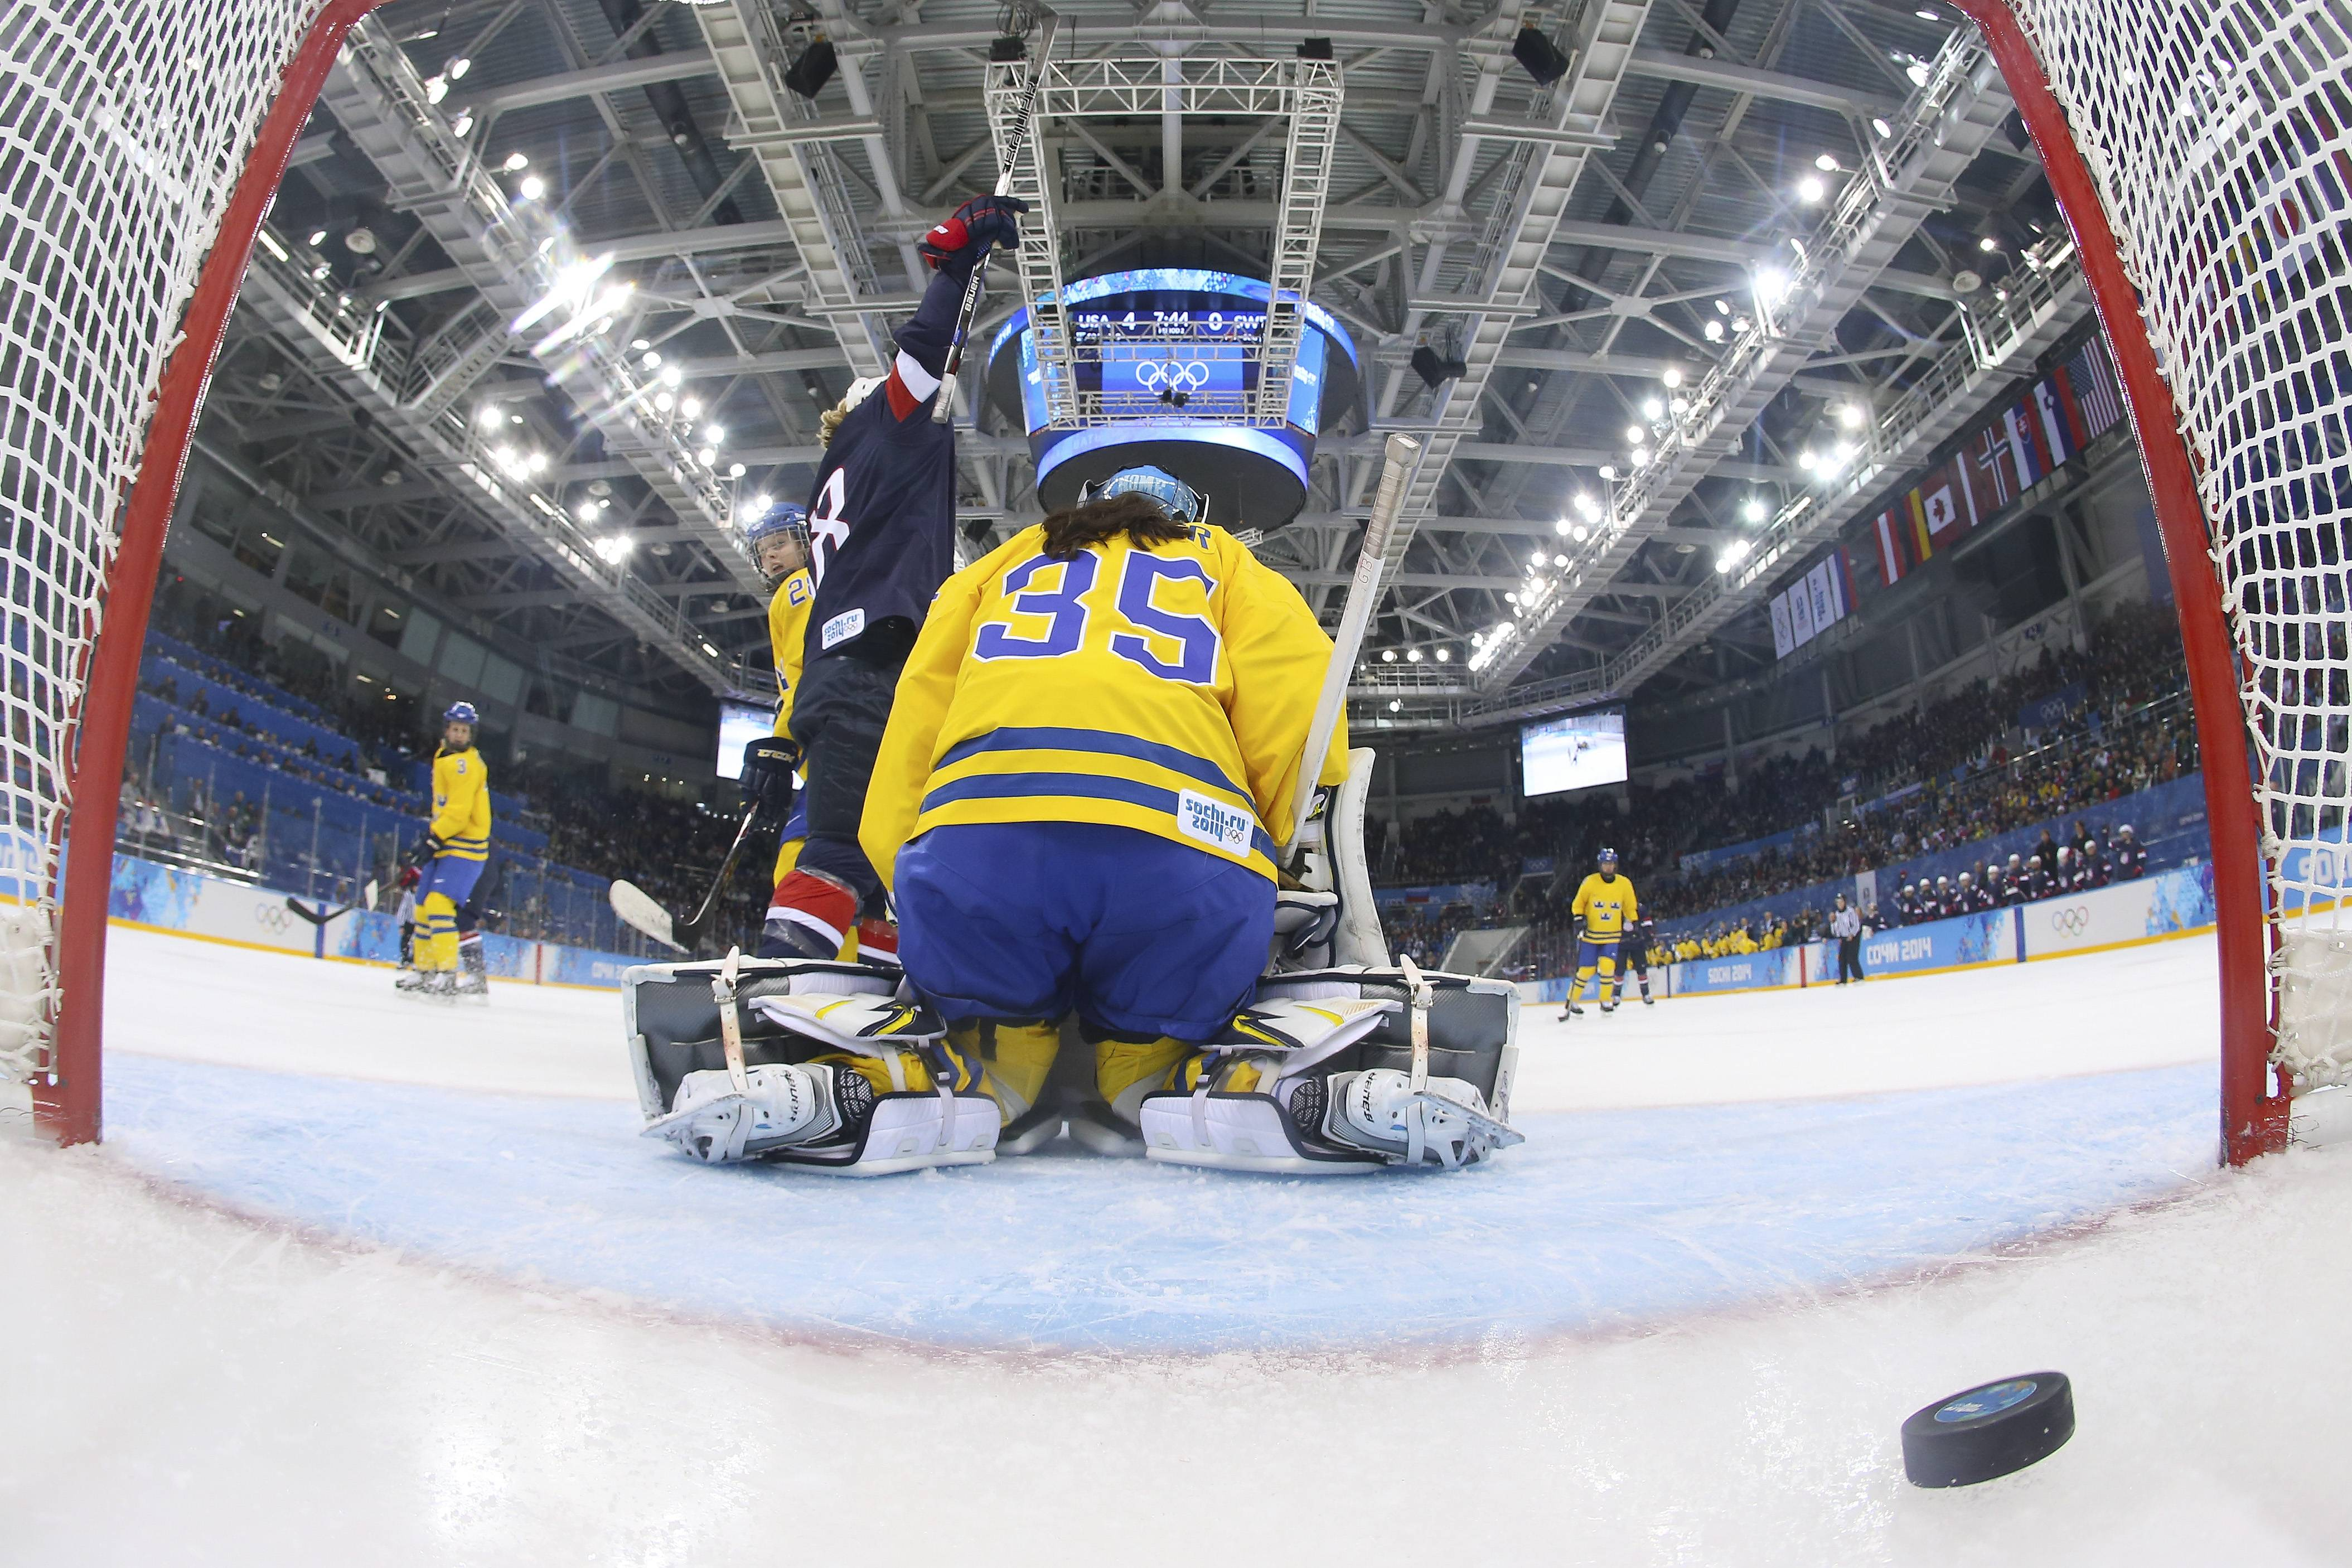 Lyndsey Fry celebrates Megan Bozek's goal as Goalkeeper Valentina Wallner of Sweden sits on her knees Monday during the second period of the 2014 Winter Olympics women's semifinal ice hockey game at Shayba Arena in Sochi, Russia.